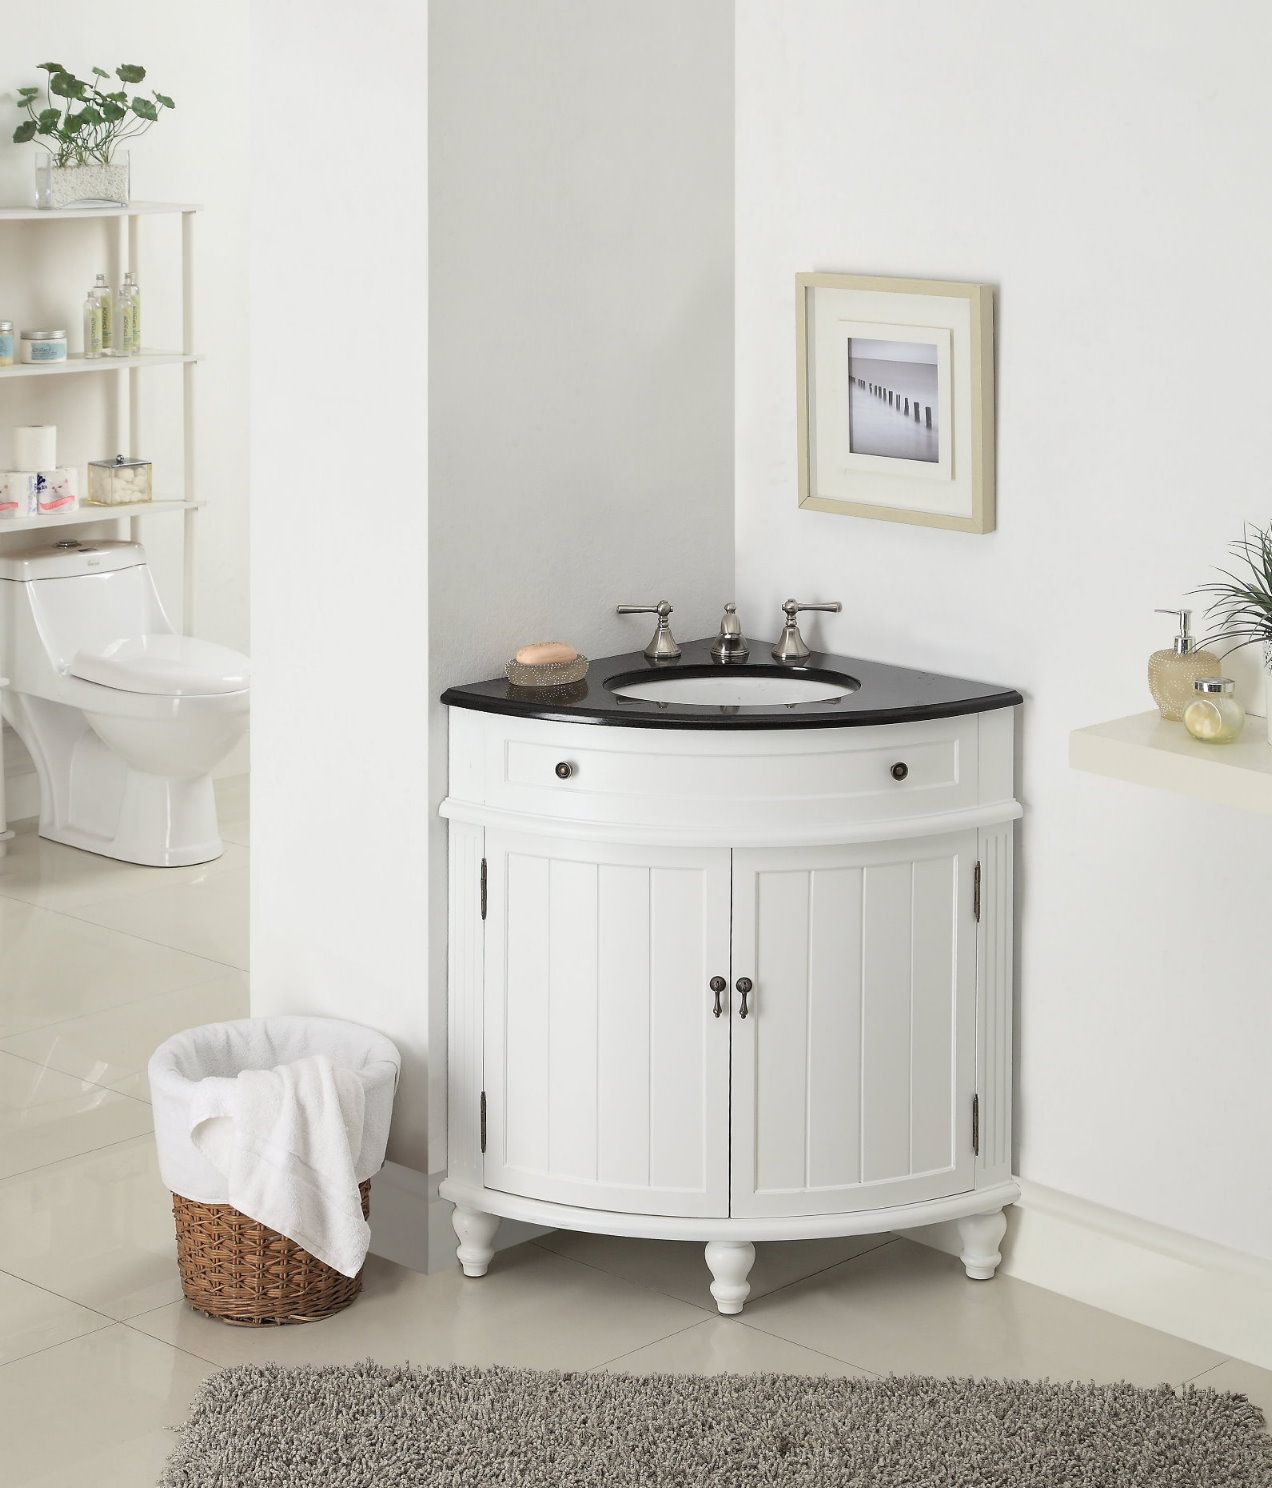 There Are Many Kinds Of Benefit Of Having The Sinks In Your Bathroom They Are As Follows Fi In 2020 Bathroom Vanity Sizes Corner Sink Bathroom Corner Bathroom Vanity